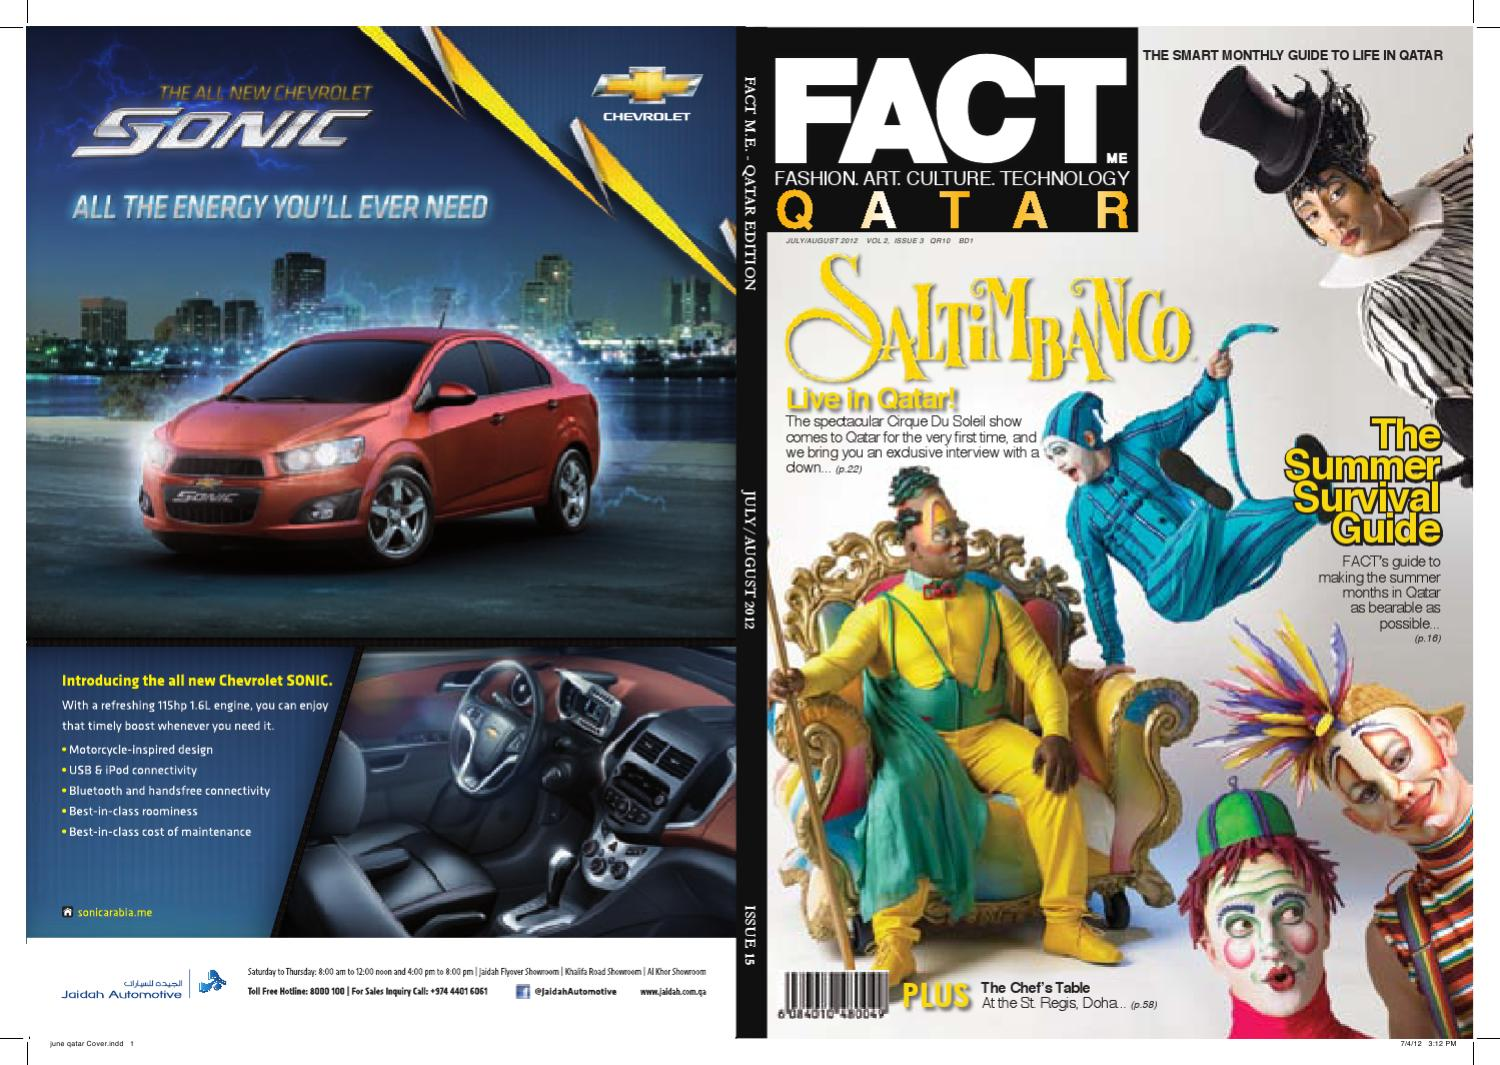 32344b011689 FACT Magazine Qatar July + August 2012 by Fact Magazine - issuu